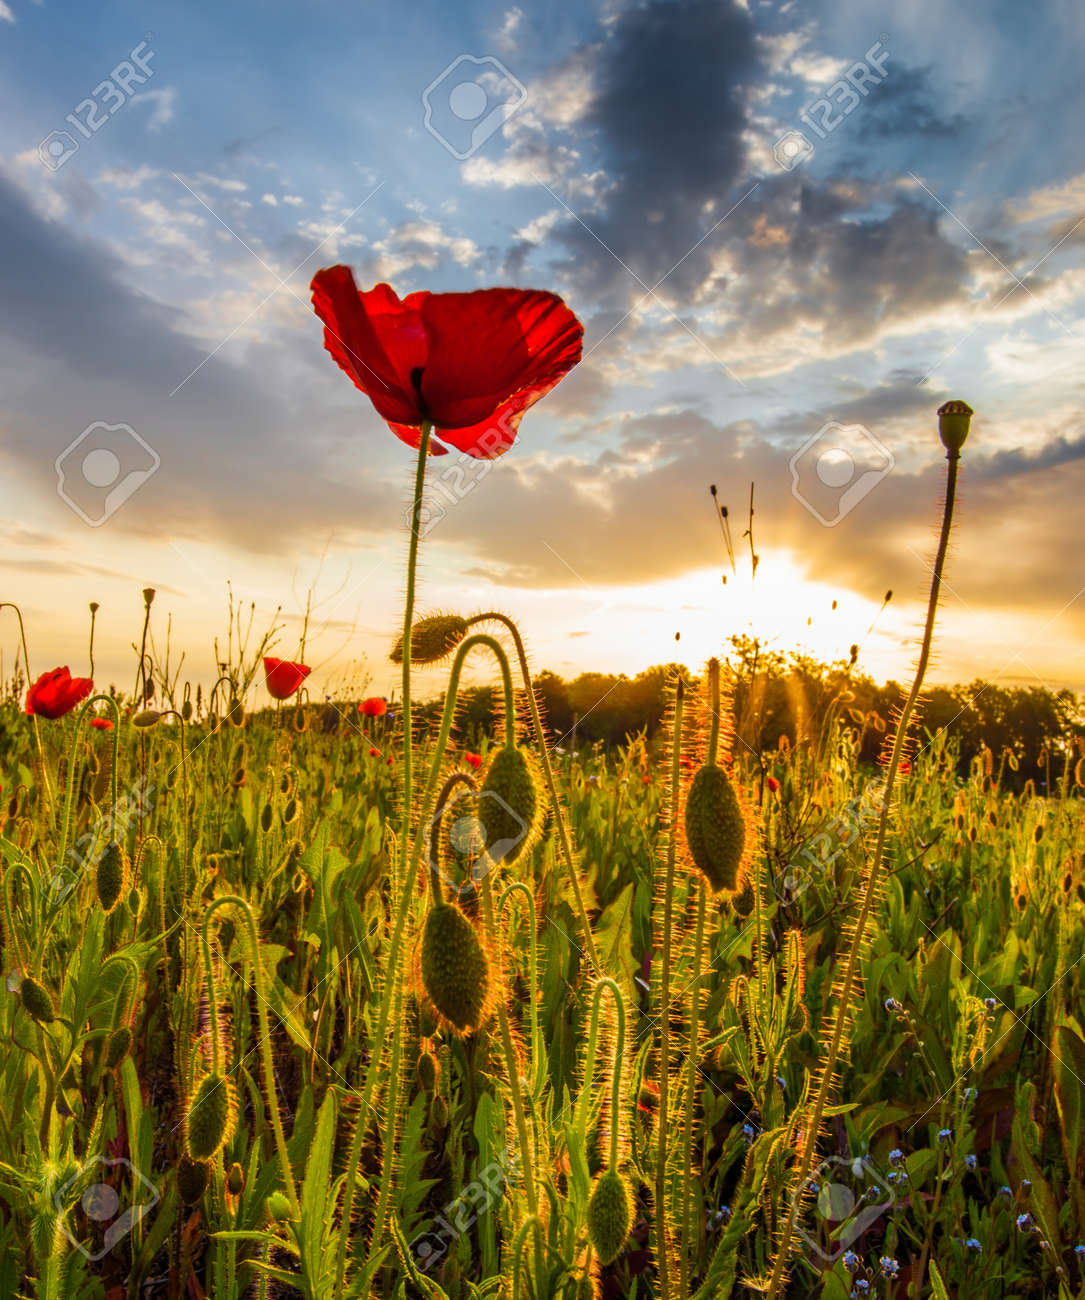 Poppy flower field at night royalty free stock photography image - Wild Poppies At Dawn With Sun Rising In The Background At A Meadow Stock Photo